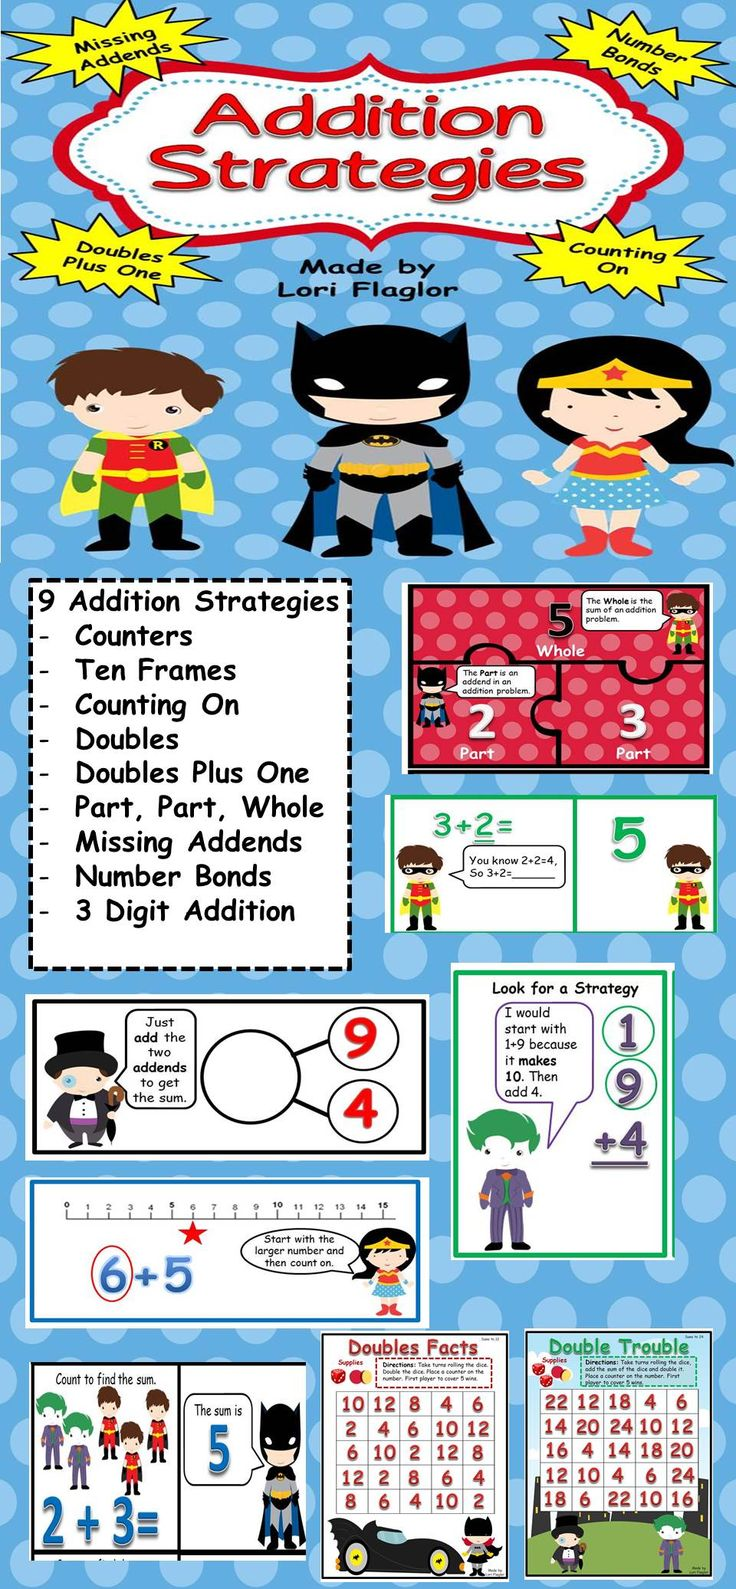 Worksheet K5 Math Teaching Resources 1000 images about place value on pinterest subtraction addition strategies this is a fun and motivational way to teach reinforce perfect for small group remedial math